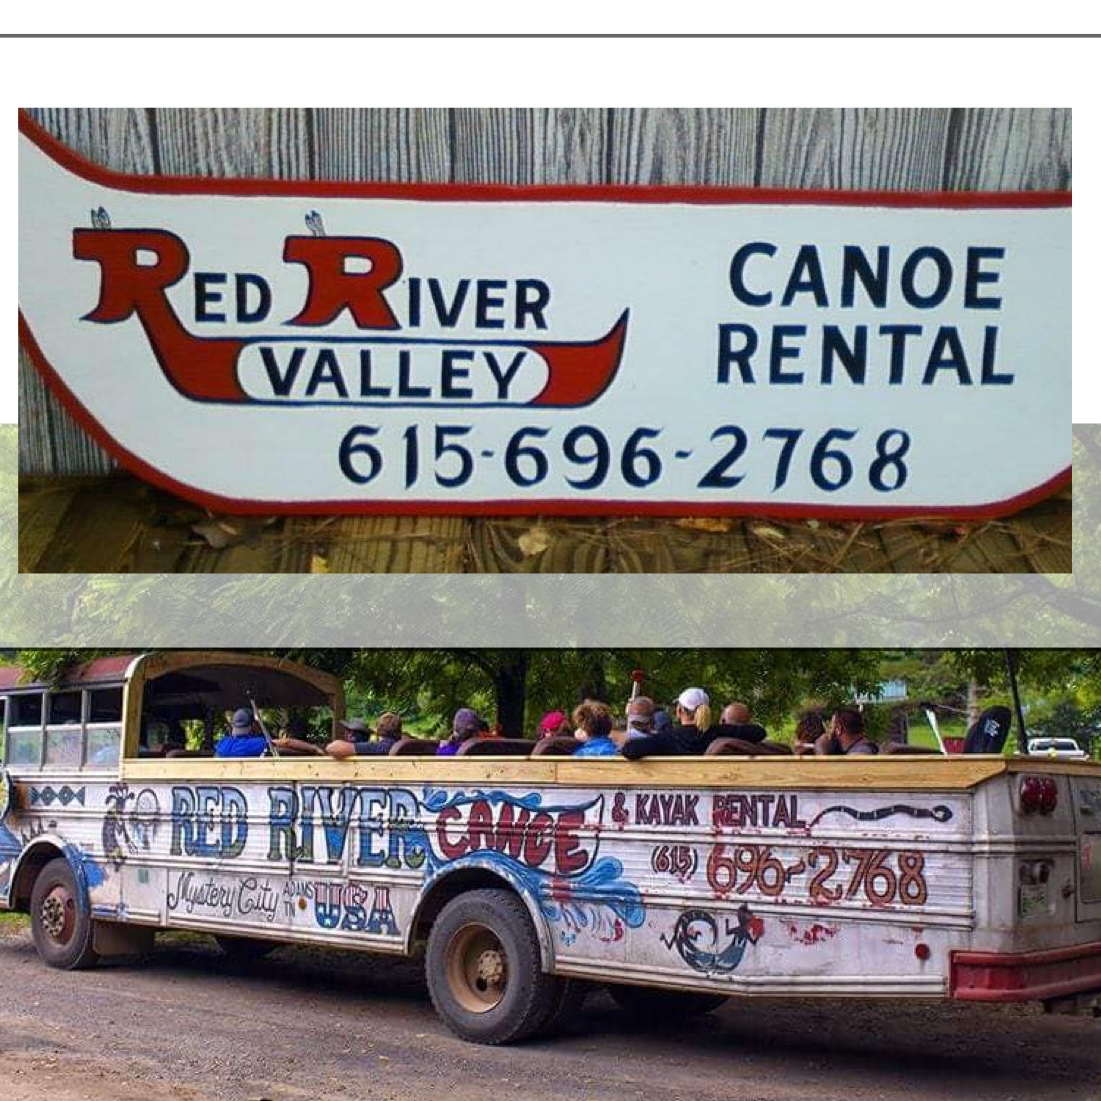 Red River Valley & Canoe Rental